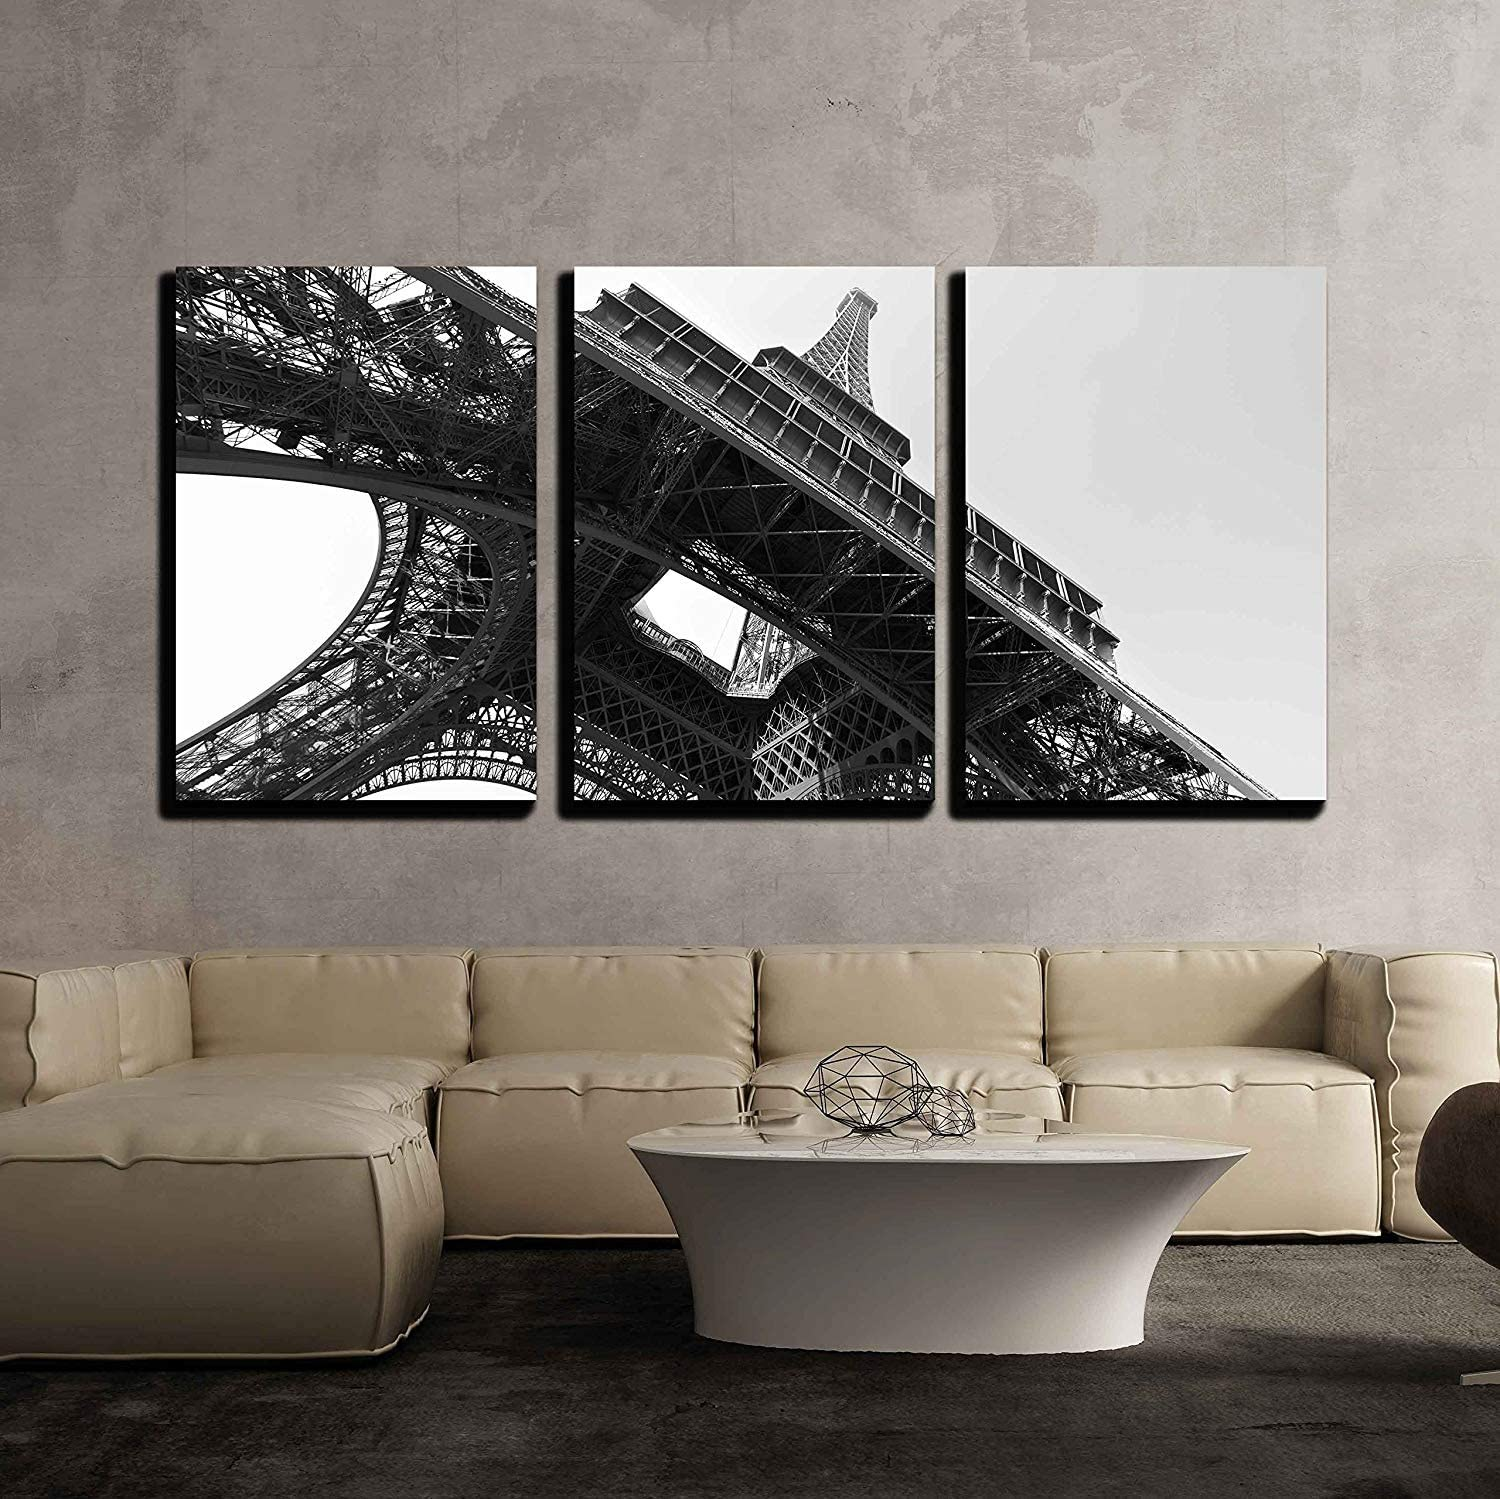 wall26-3 Piece Canvas Wall Art 16x24x3 Panels Modern Home Decor Stretched and Framed Ready to Hang a Mechanical Background with Gears and Cogs